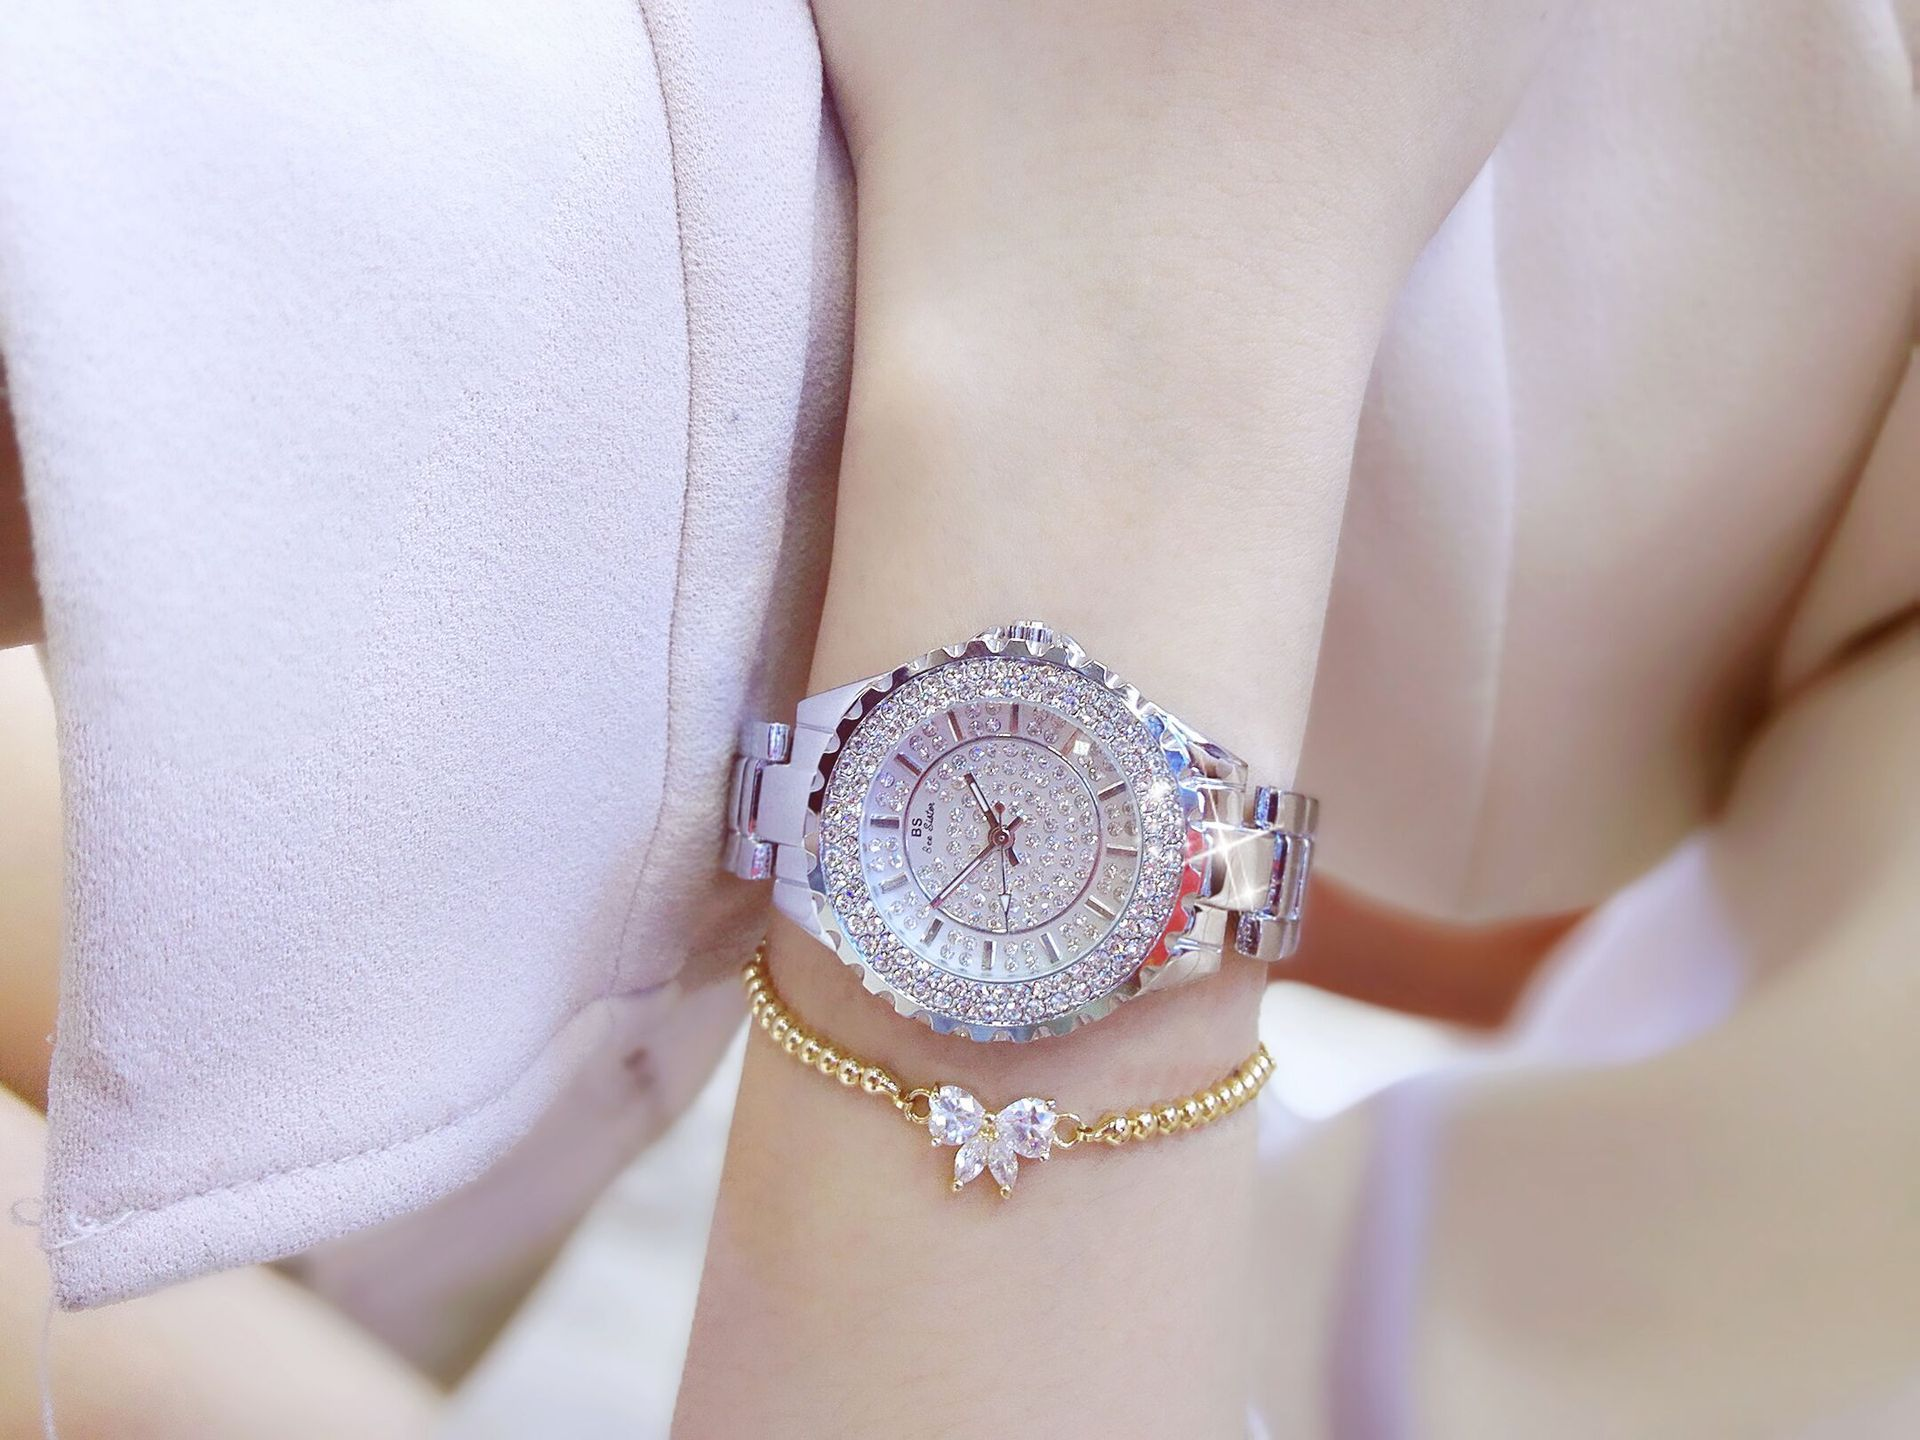 Bs Genuine Full Diamond Fashion Women S Watch Diamond Table Luxury